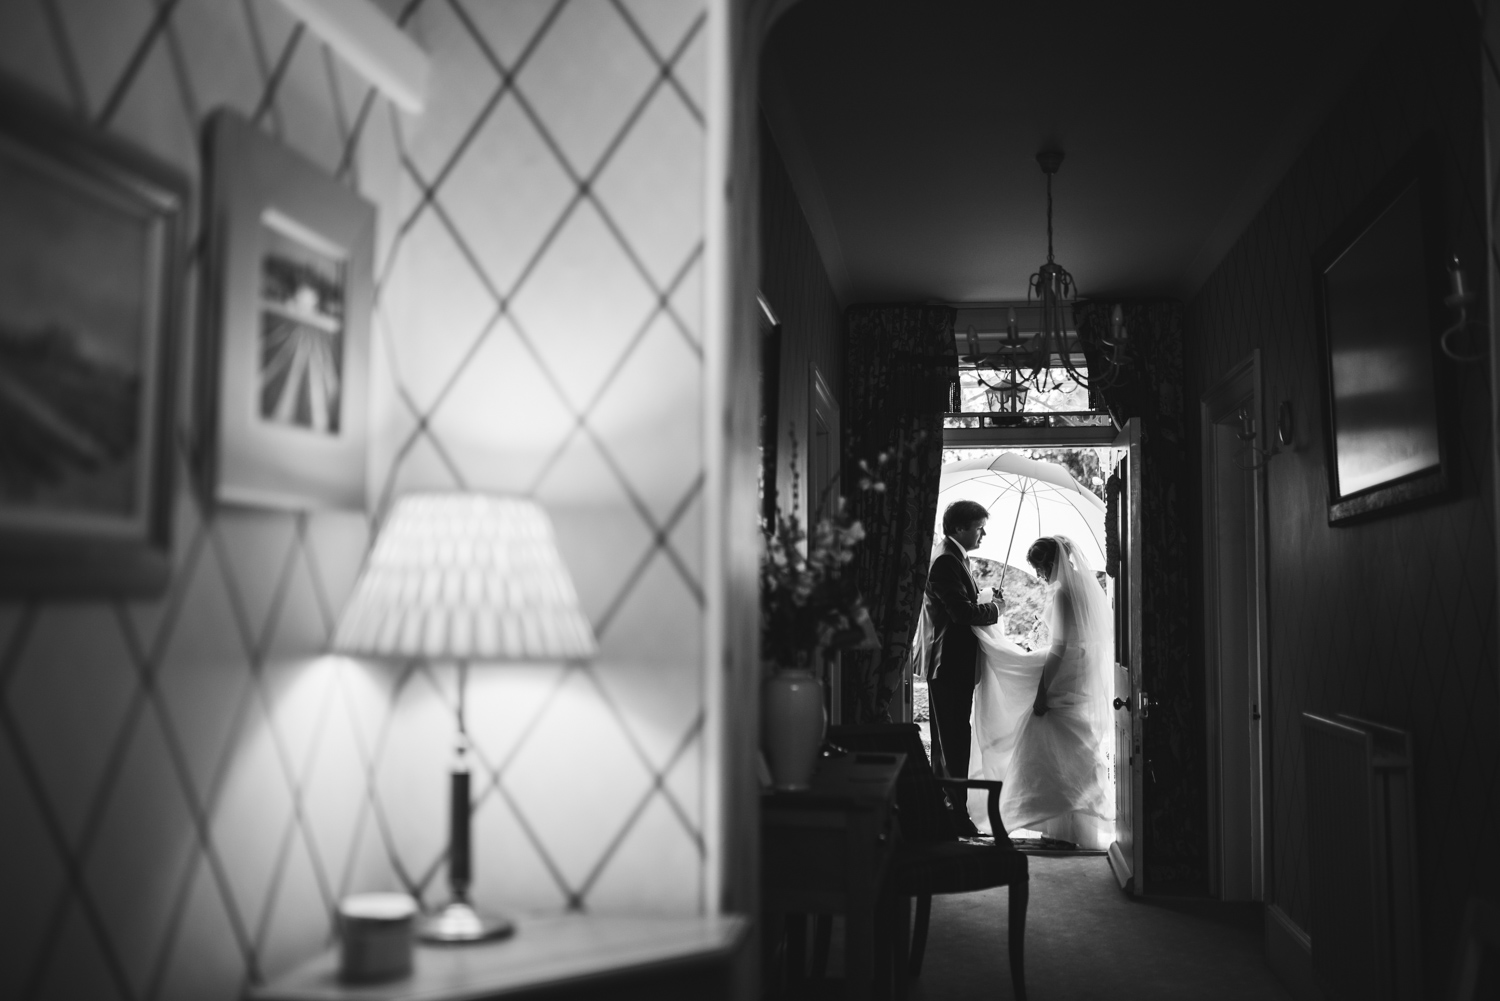 wedding-photographer-st-ives-cambs-18.jpg